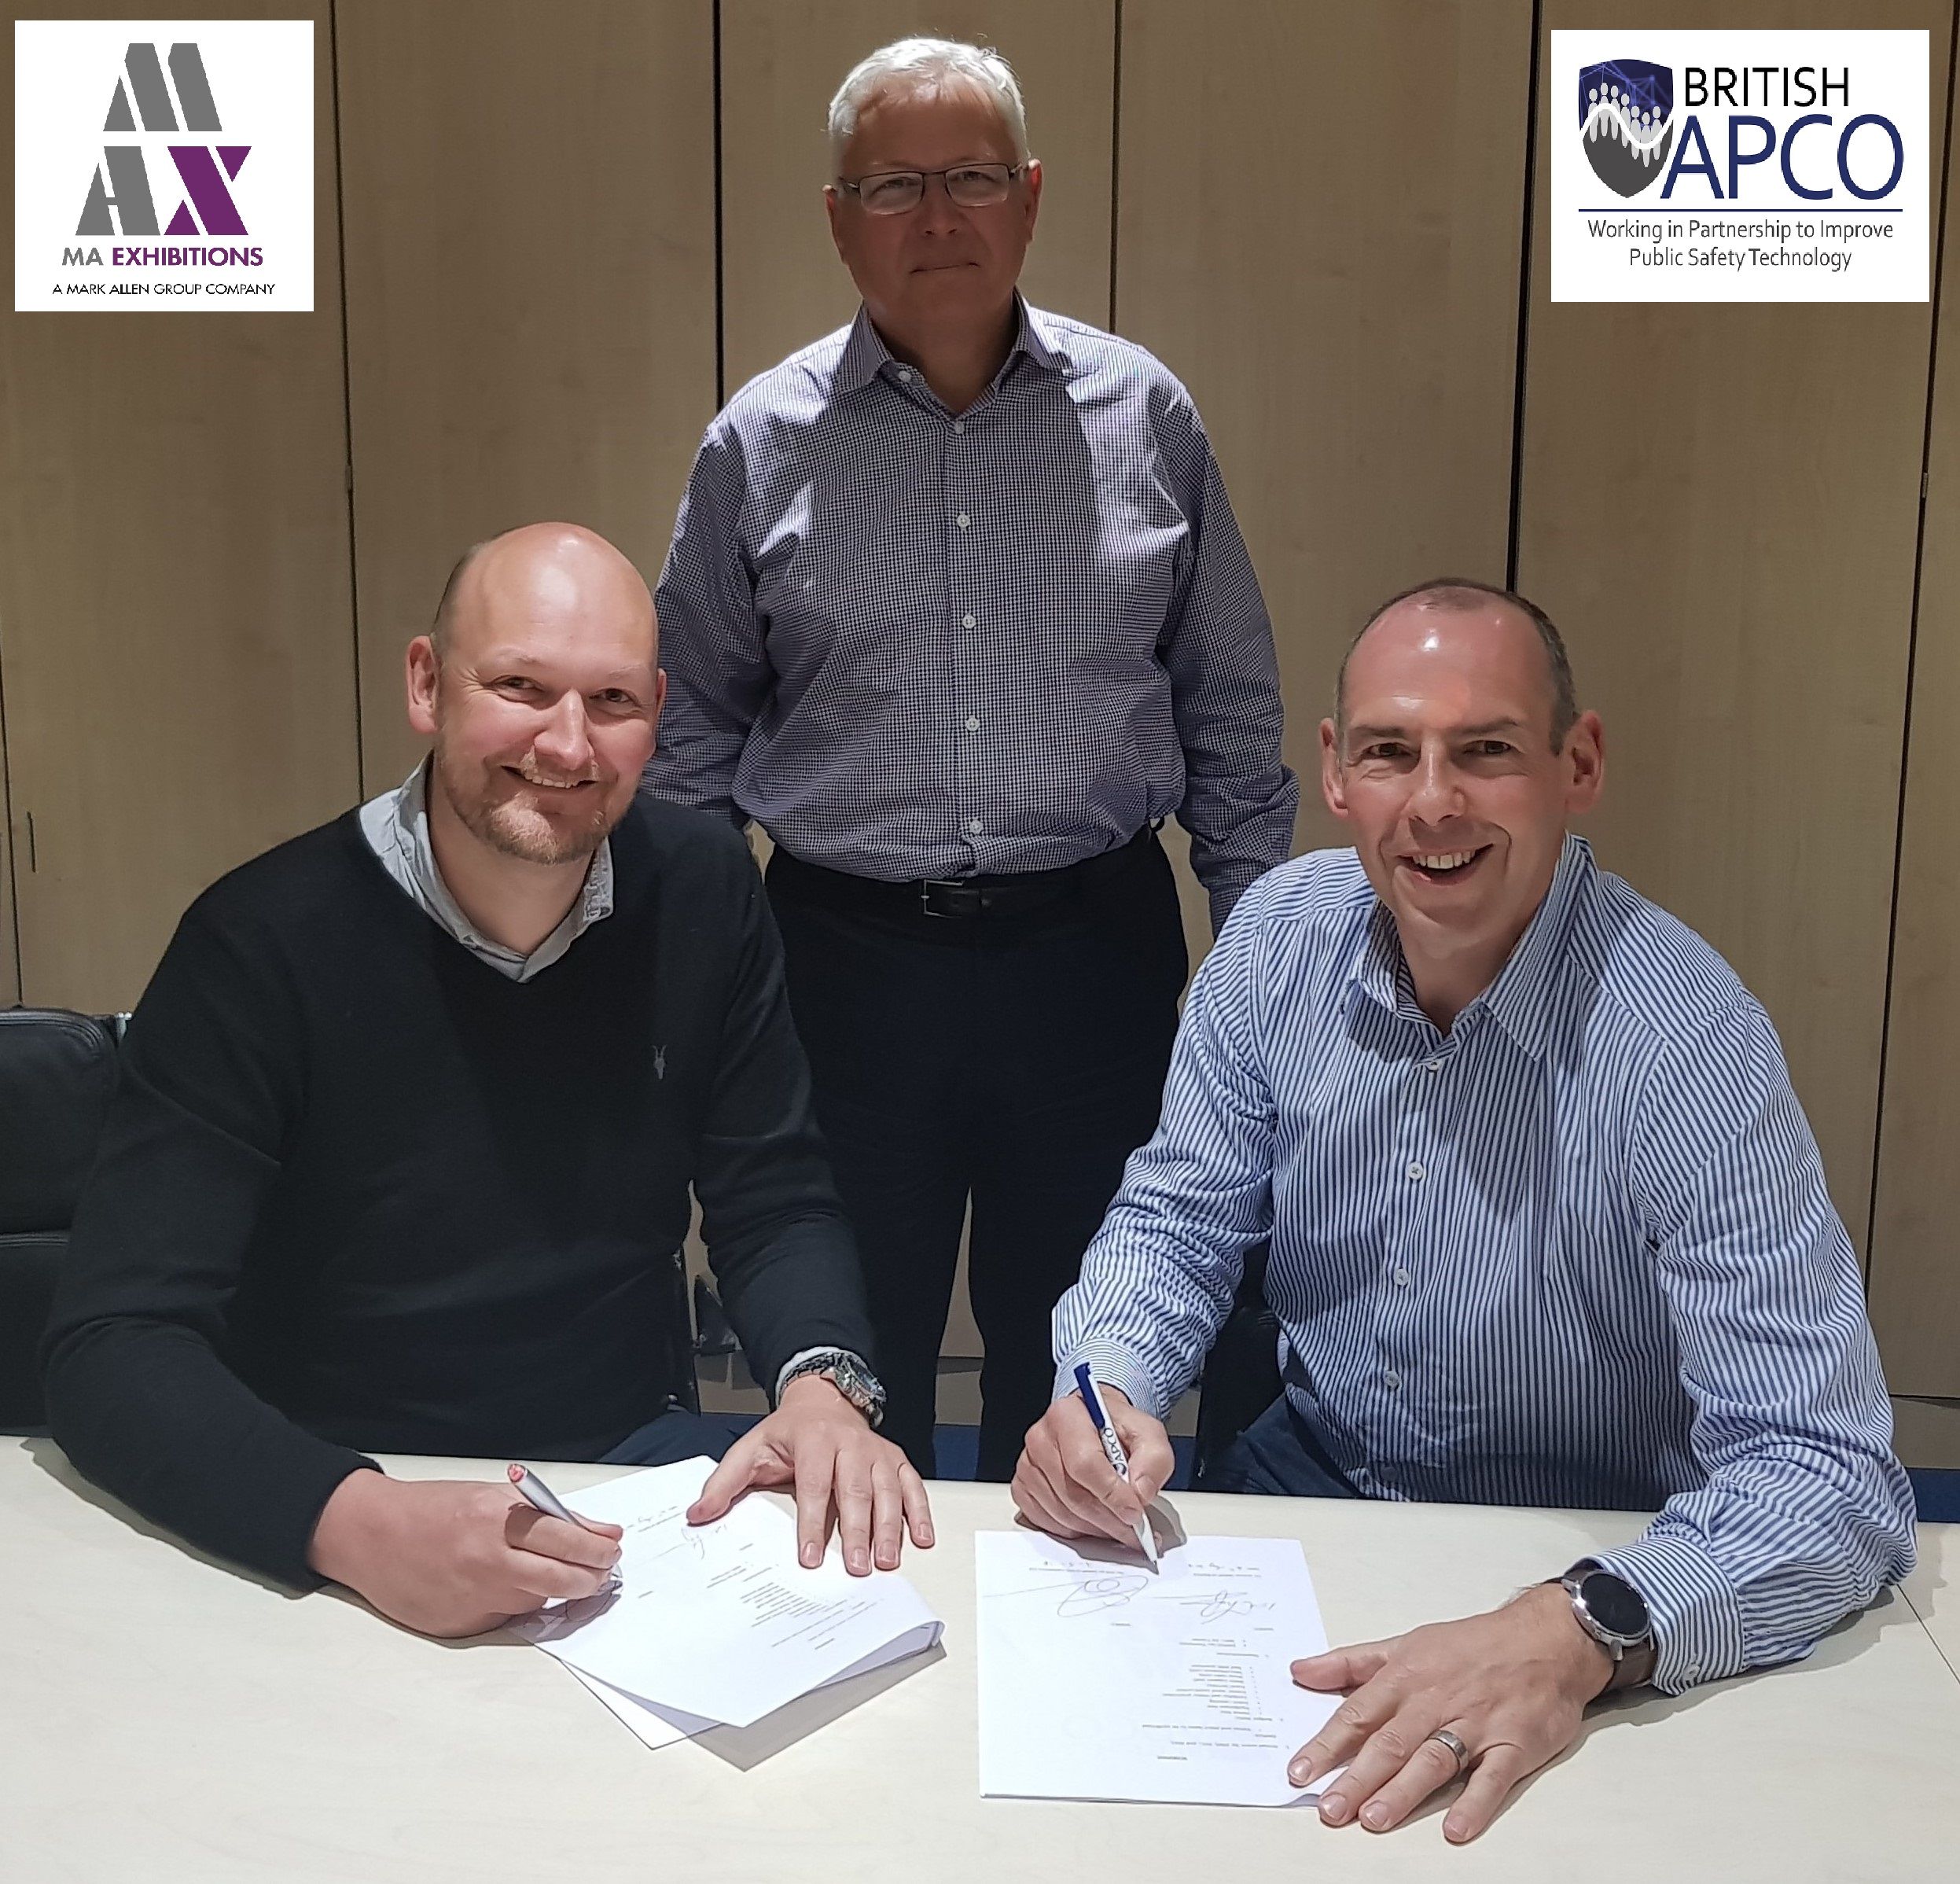 President John Anthony looks on as Ed Tranter (MAX) and Ian Thompson (BAPCO) sign the new contract.